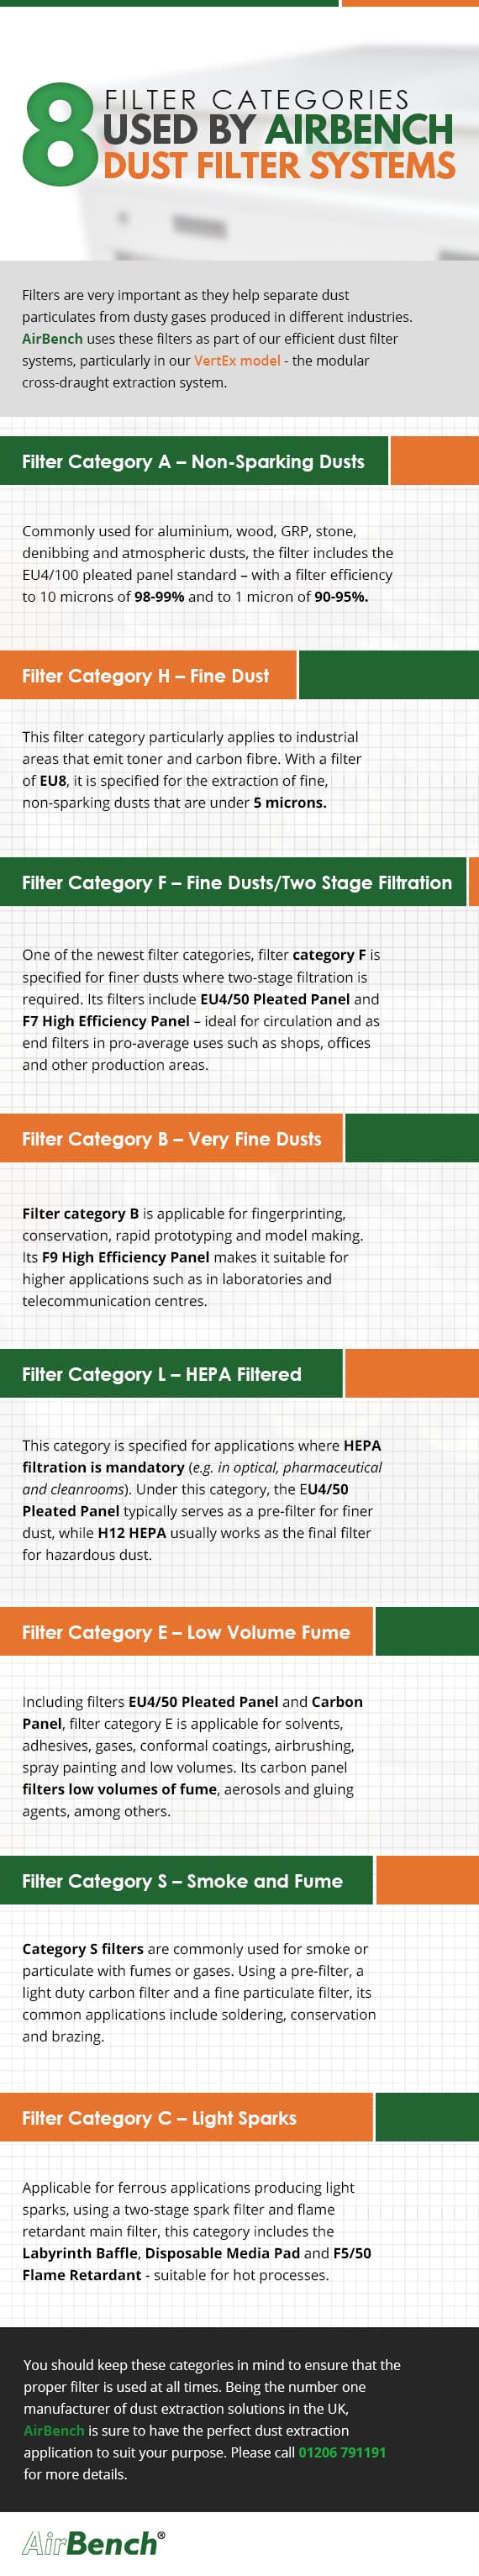 8-Filter-Categories-Used-by-Airbench-Dust-Filter-System